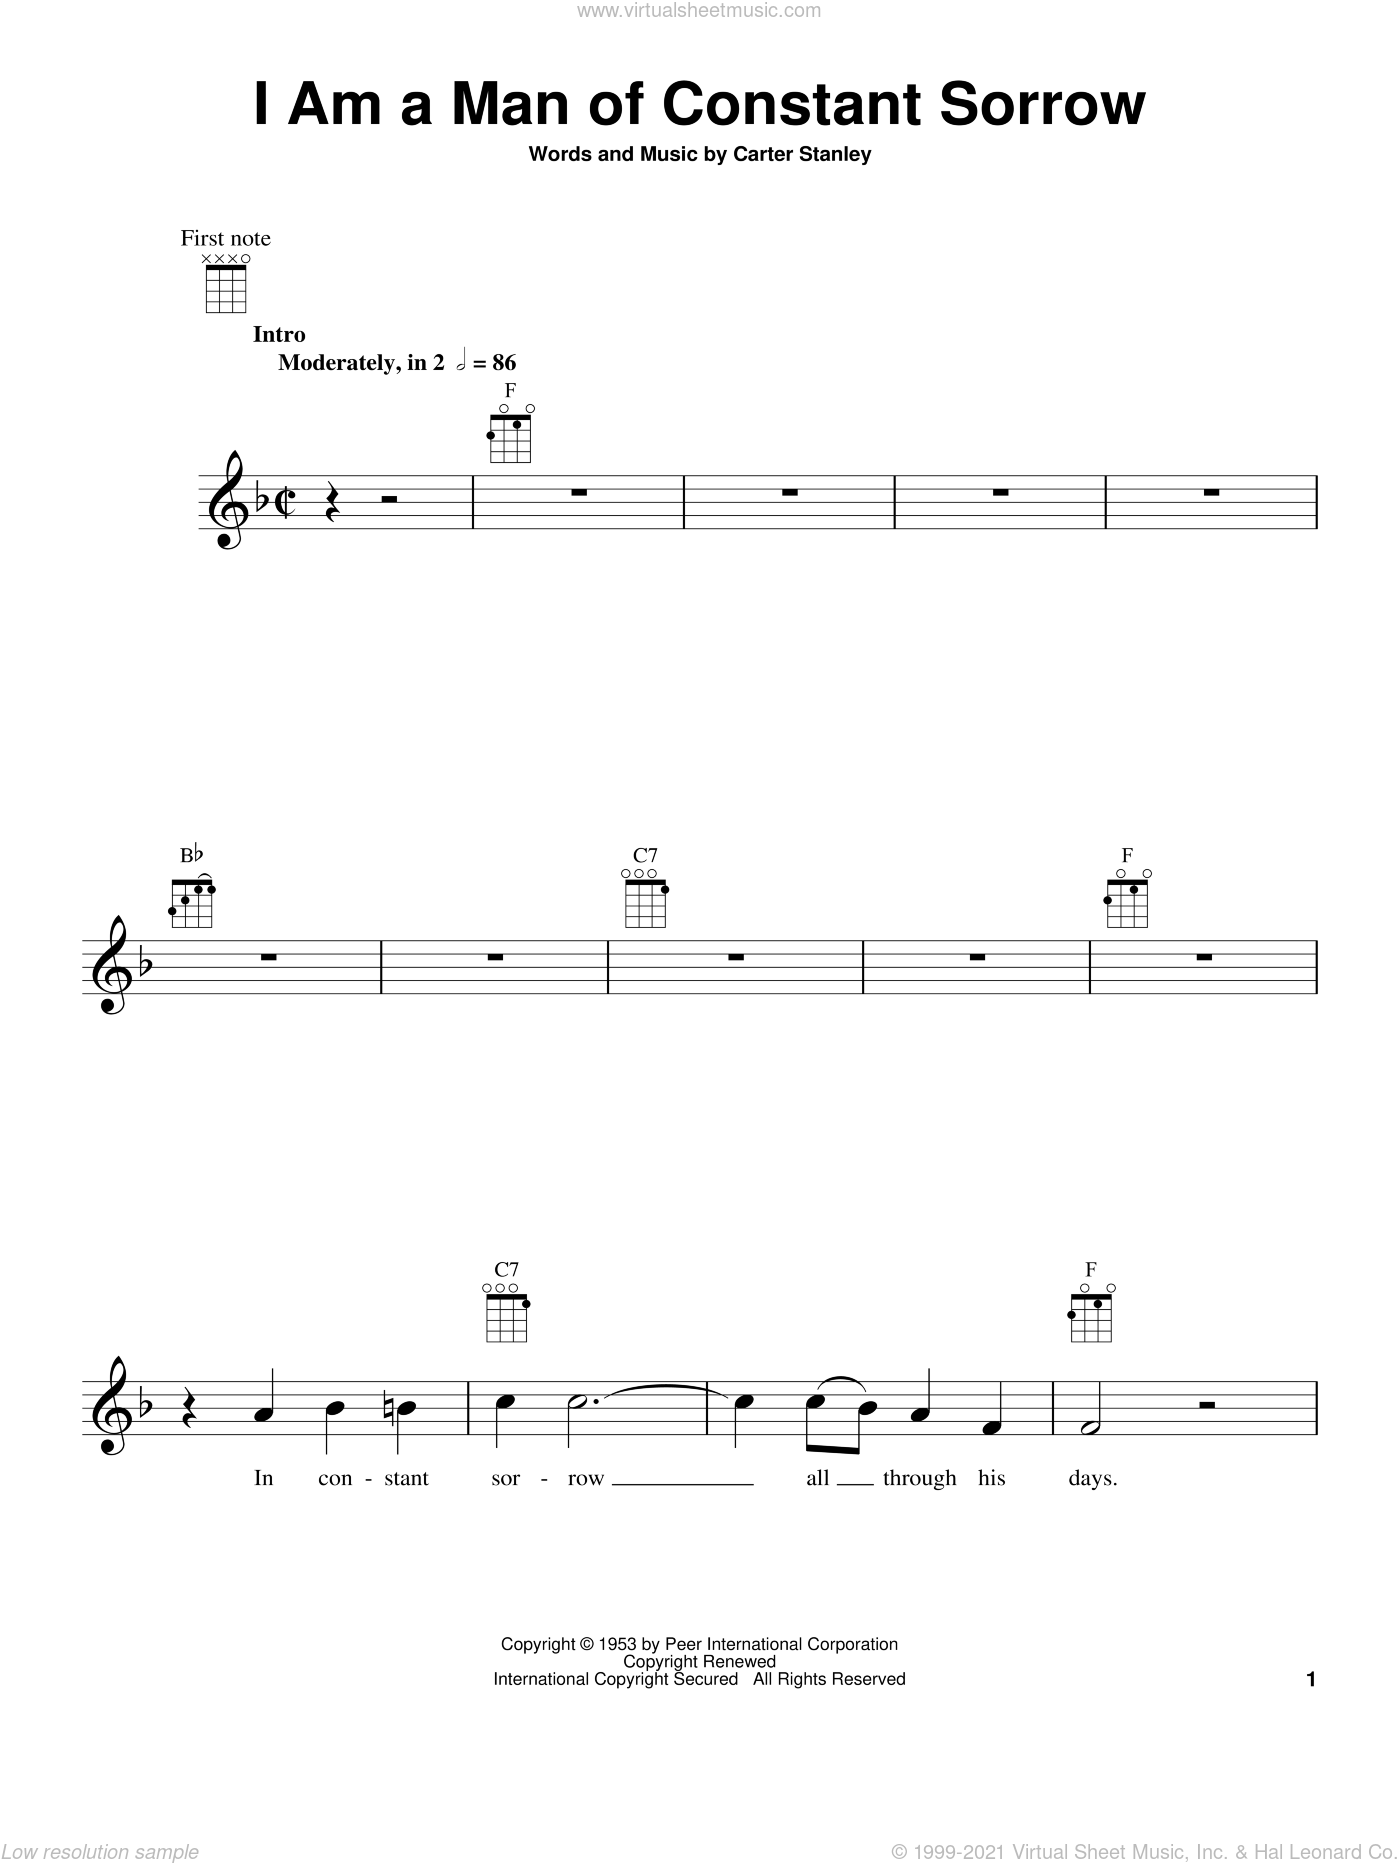 I Am A Man Of Constant Sorrow sheet music for ukulele by Carter Stanley